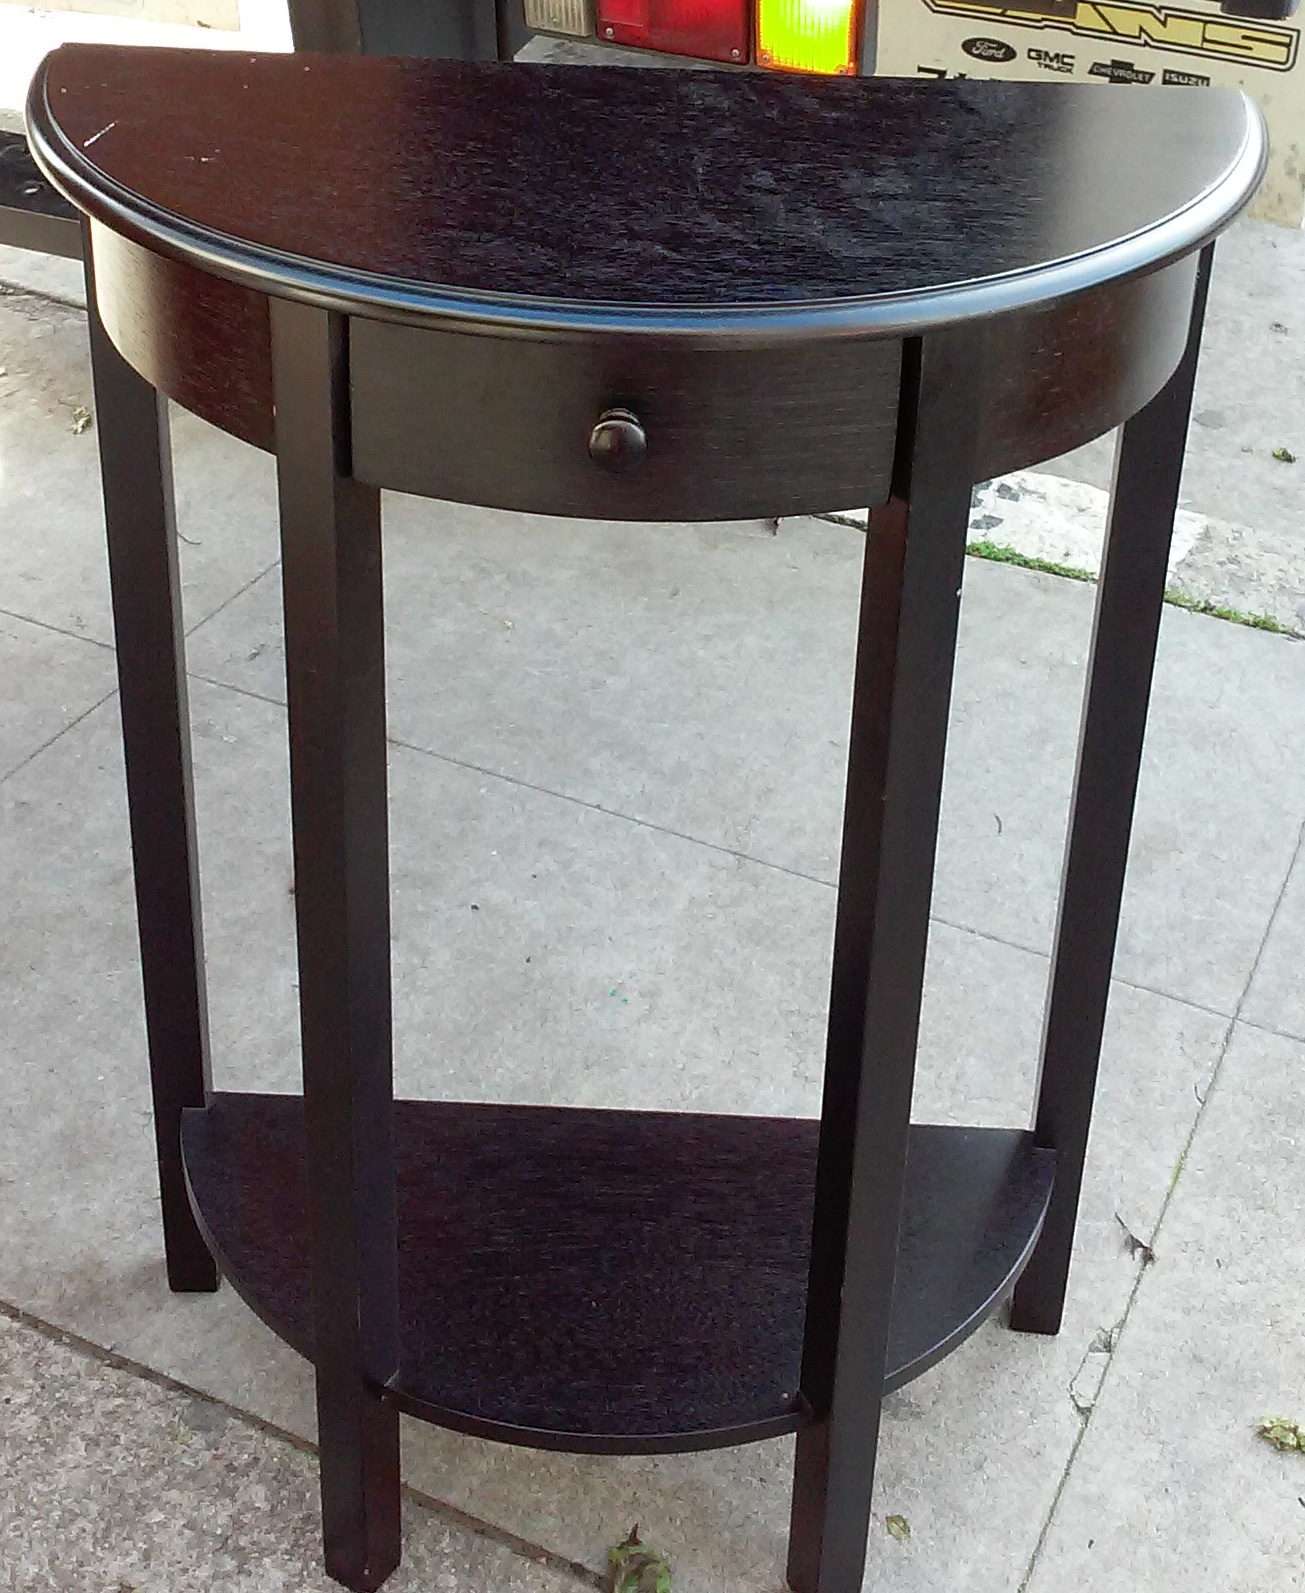 uhuru furniture collectibles sold tall half moon elephant metal accent table river goods multi colored end tables white lacquer side tablecloth black lamps room essentials hairpin